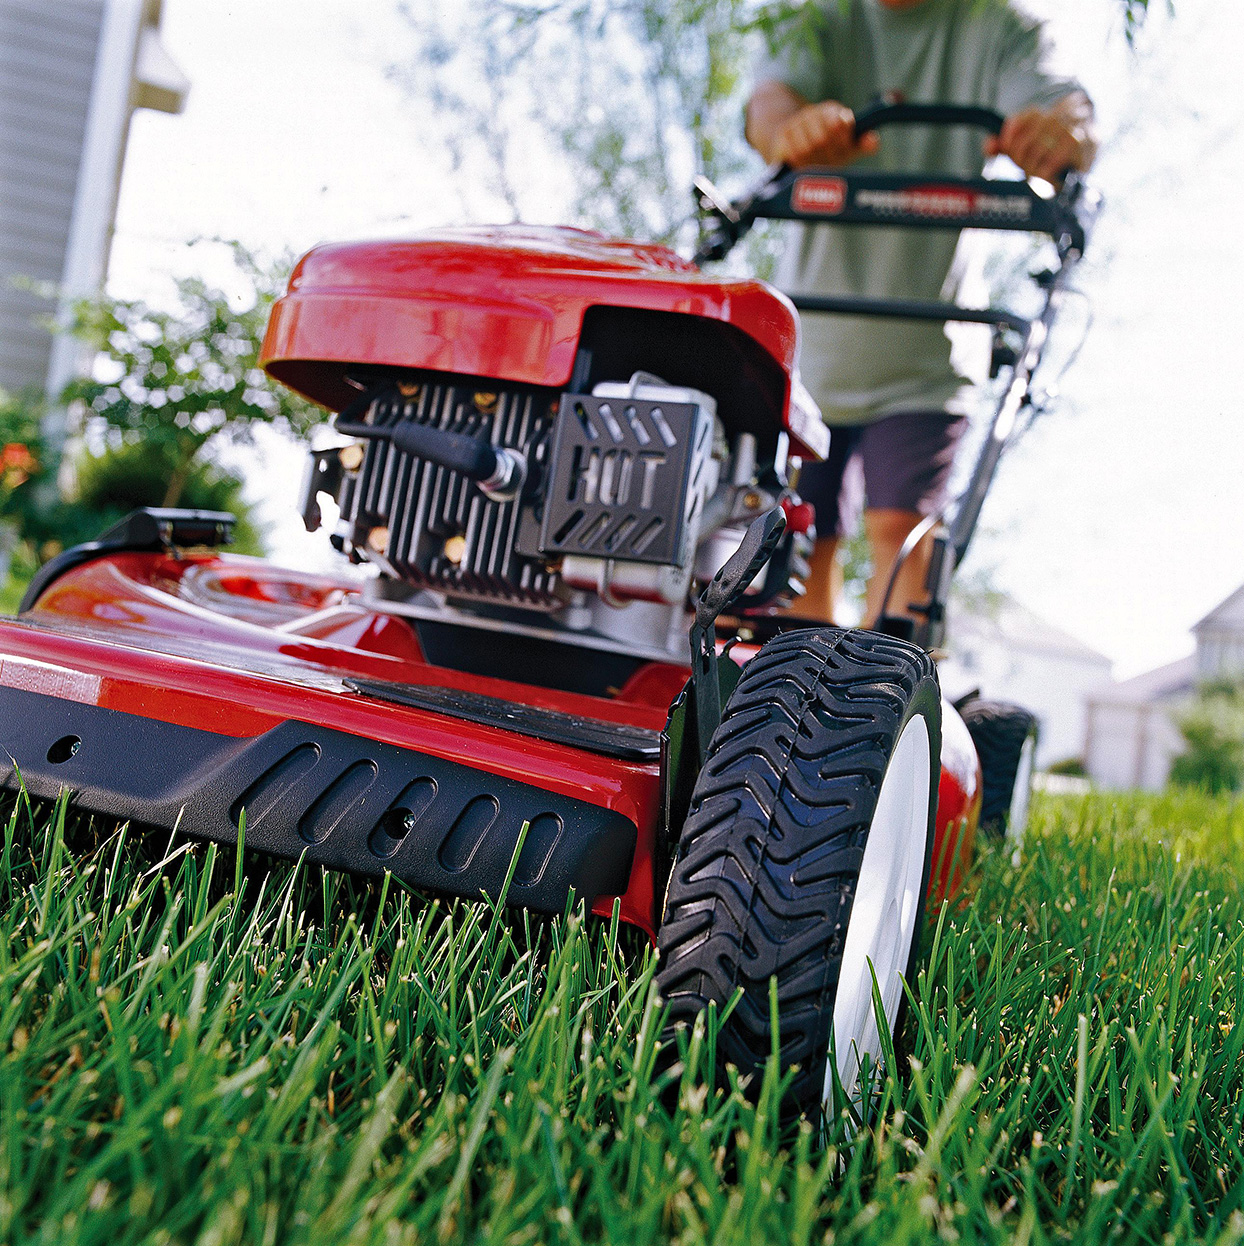 red lawn mower in grass